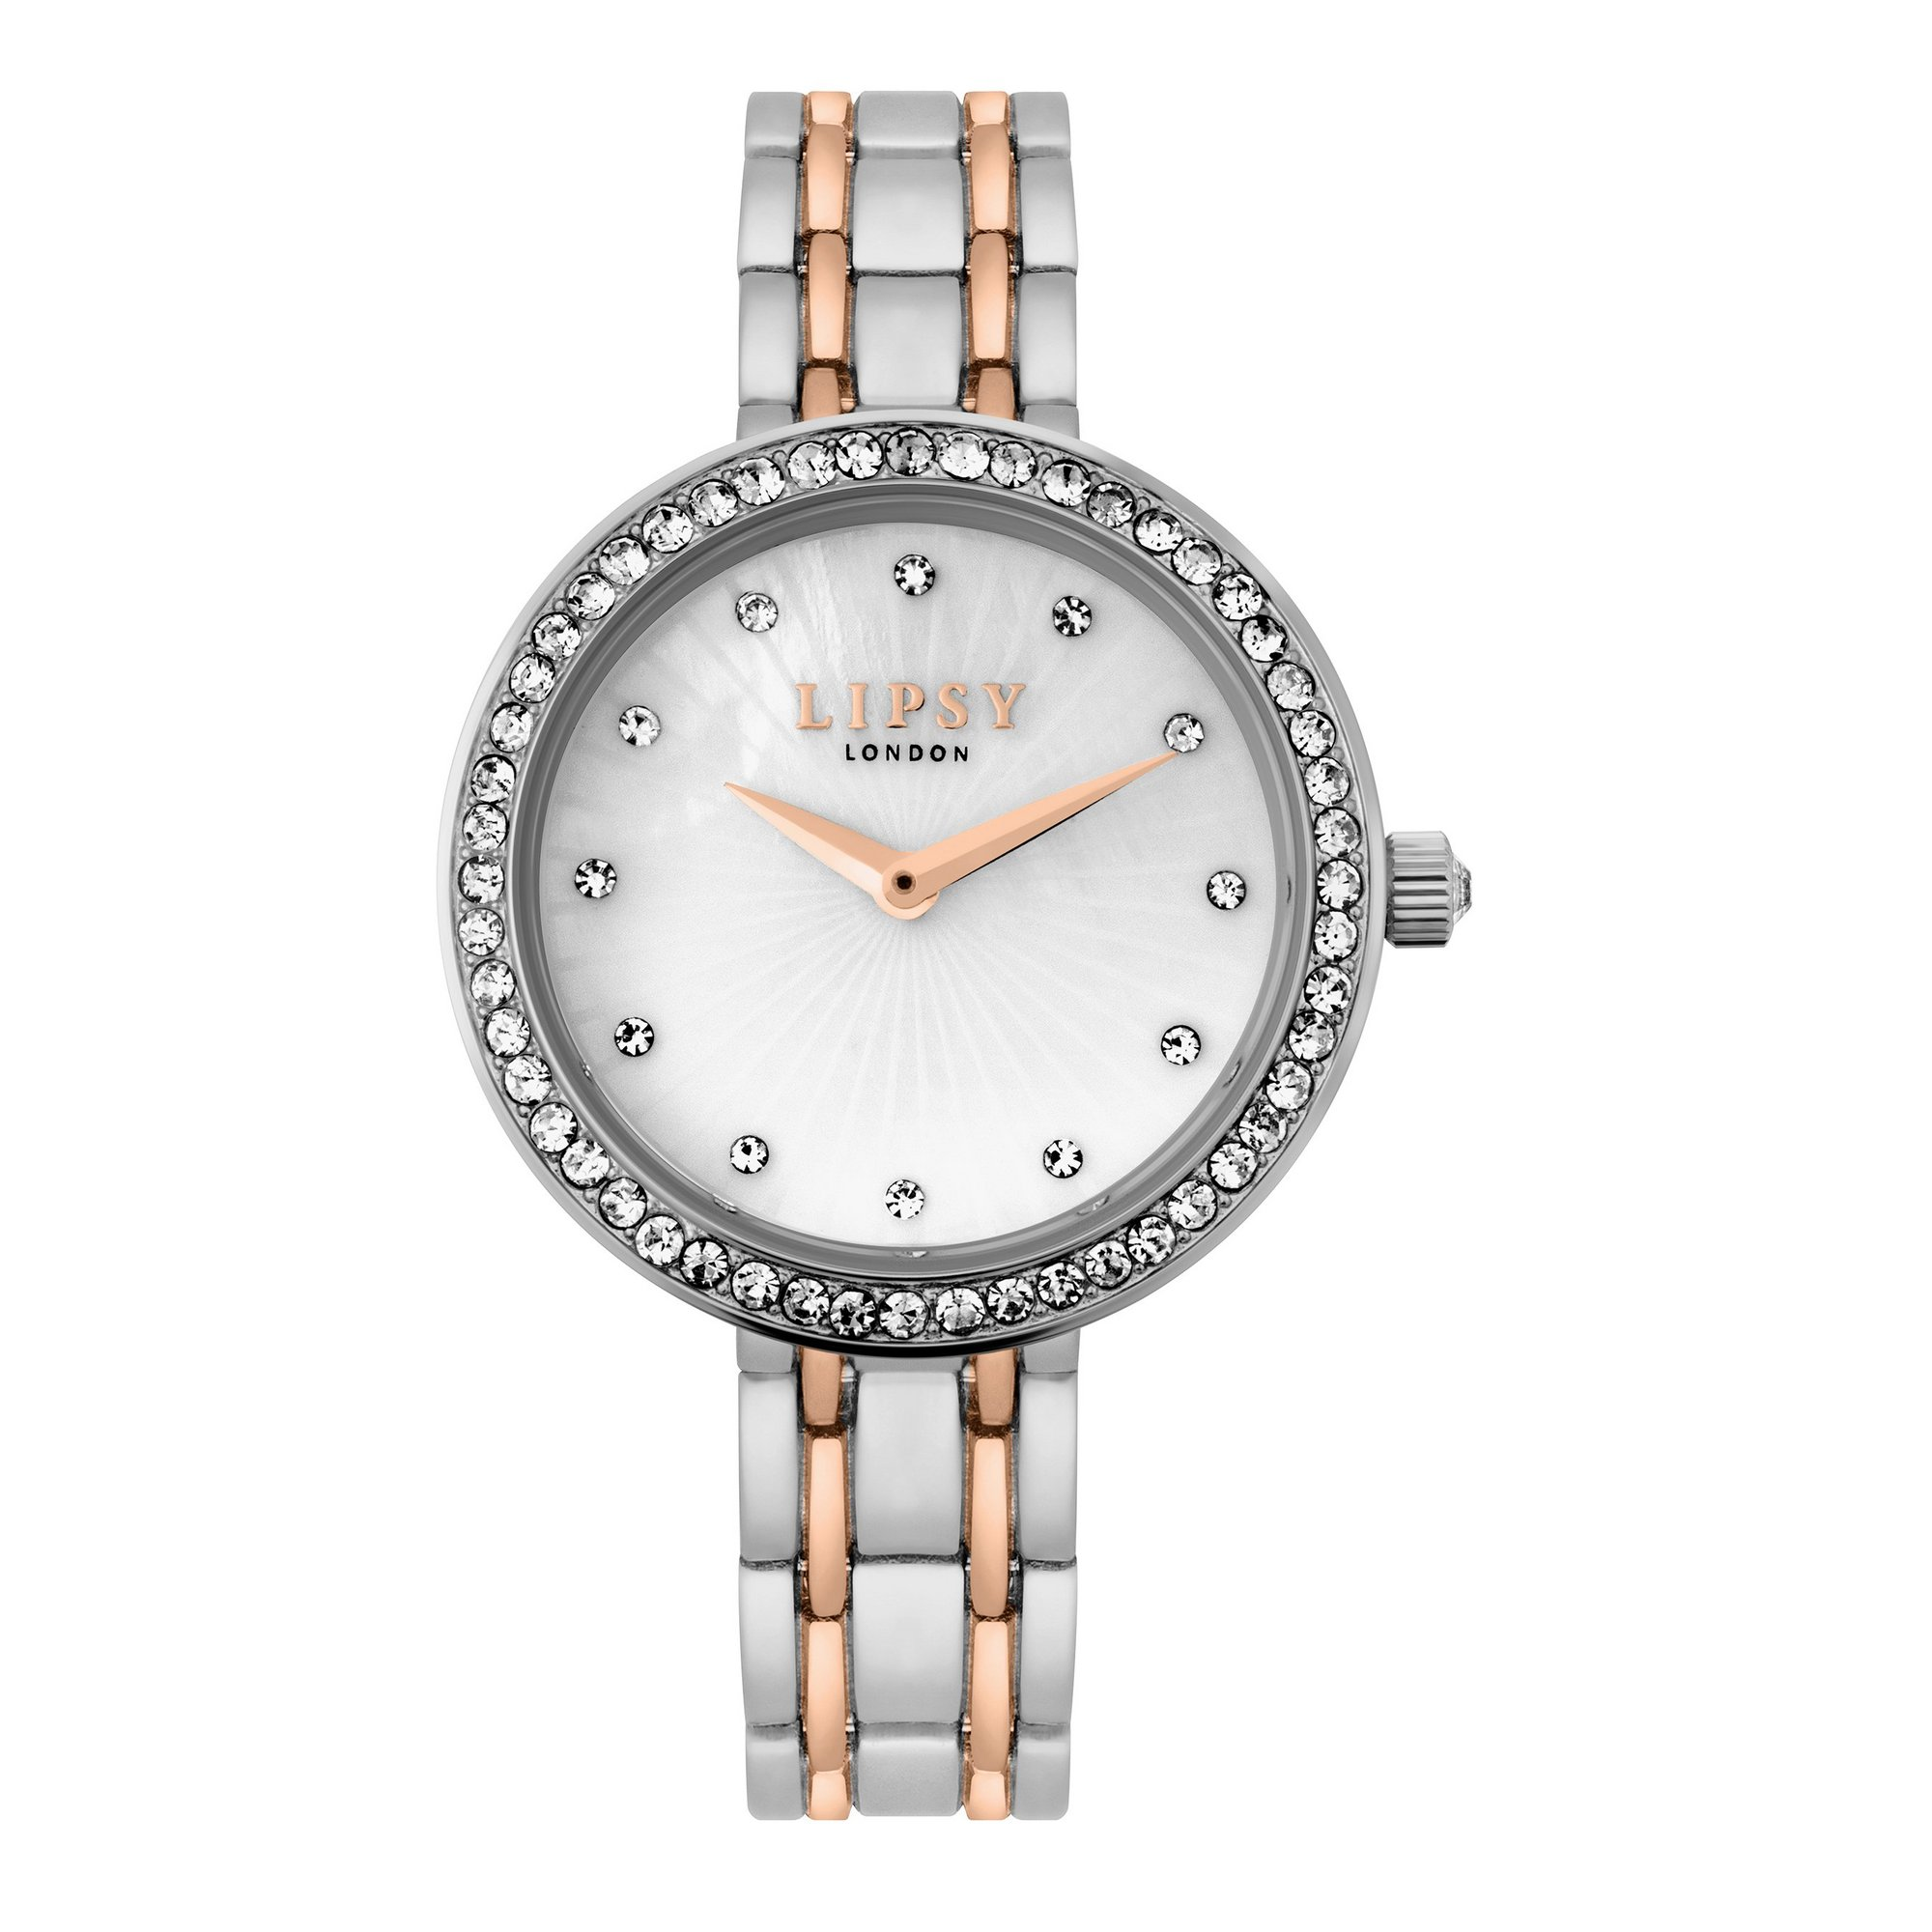 Image of Lipsy Bracelet Watch with White Mother-Of-Pearl Dial